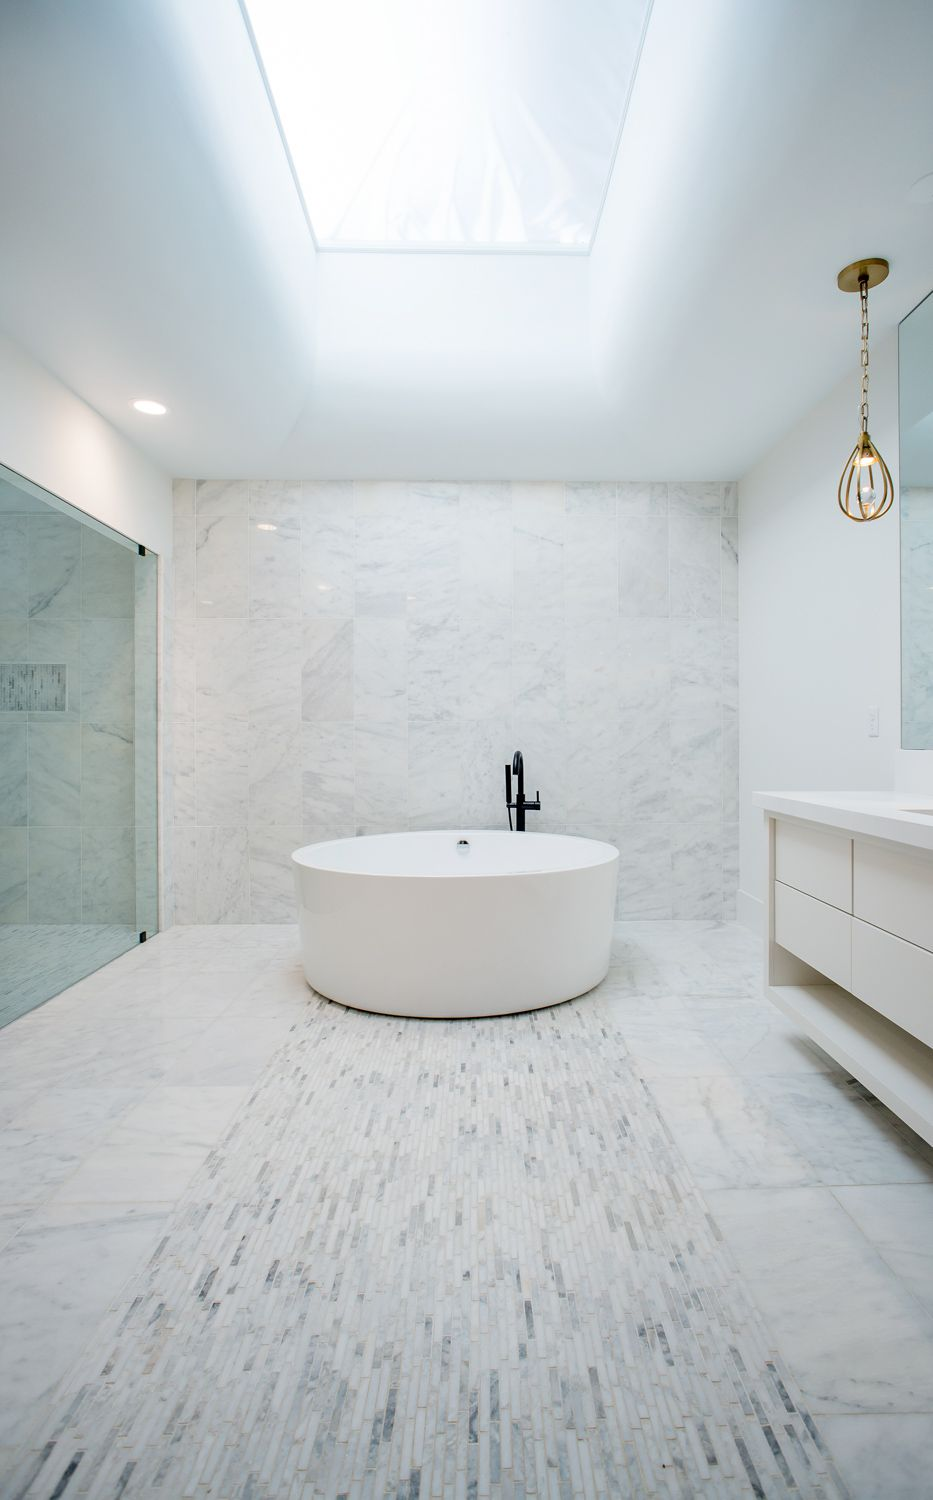 This bathroom has a round freestanding bathtub on the far side standing in the middle of the floor between the glass-enclosed shower area and the vanity. Images courtesy of Toptenrealestatedeals.com.